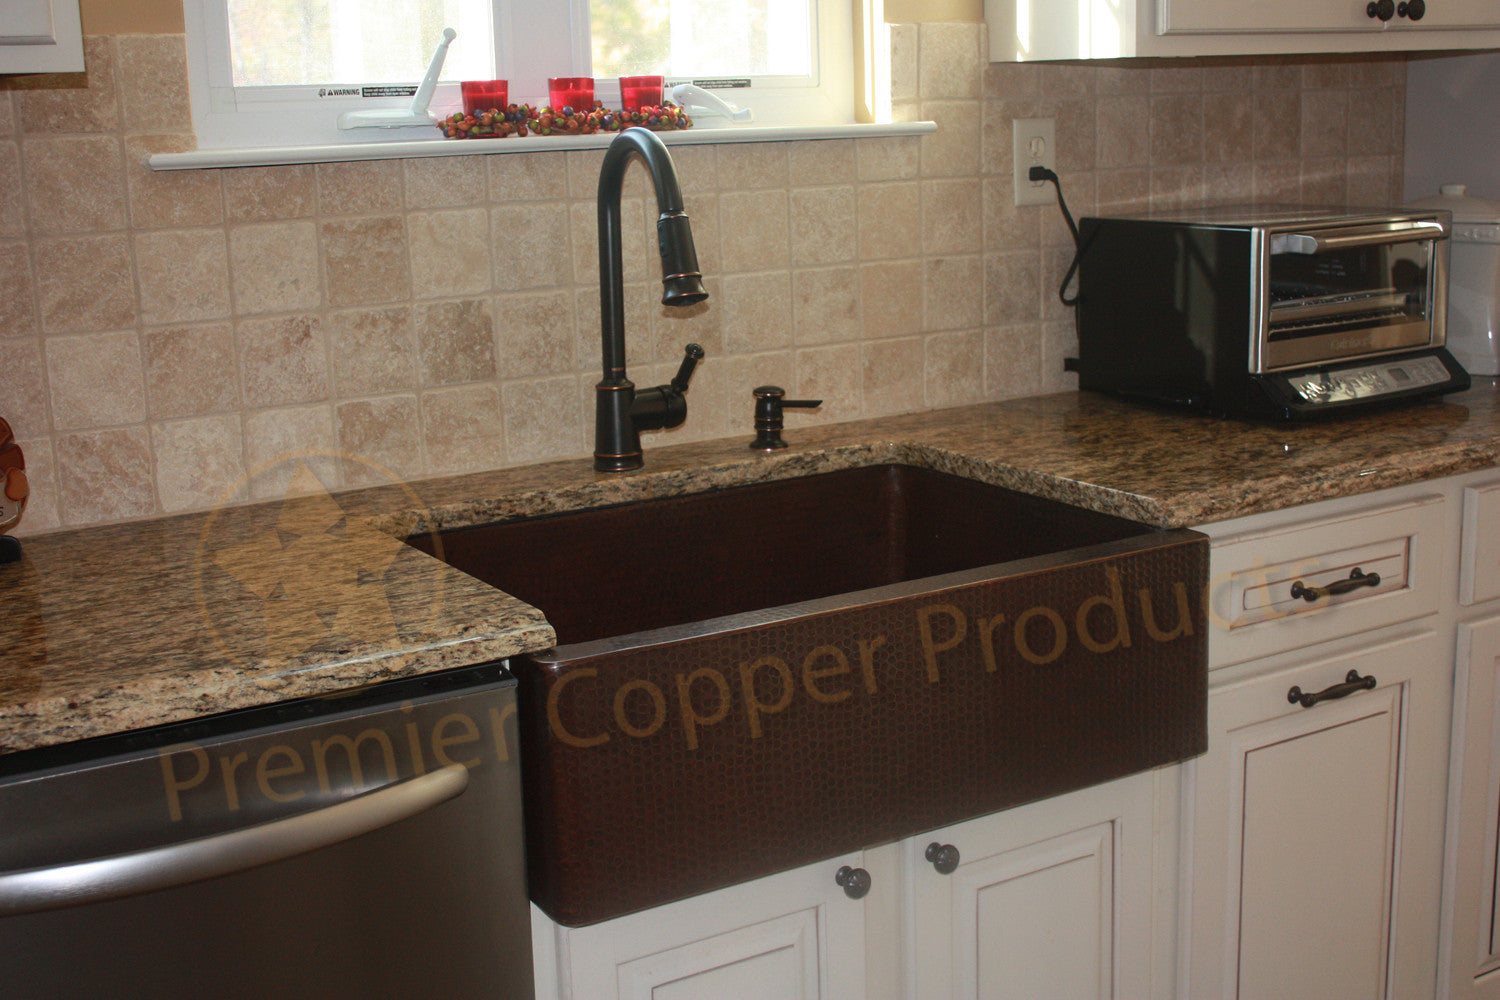 paul and choices copper an sinks extensive reviews sink top undermount kitchen his s uncle